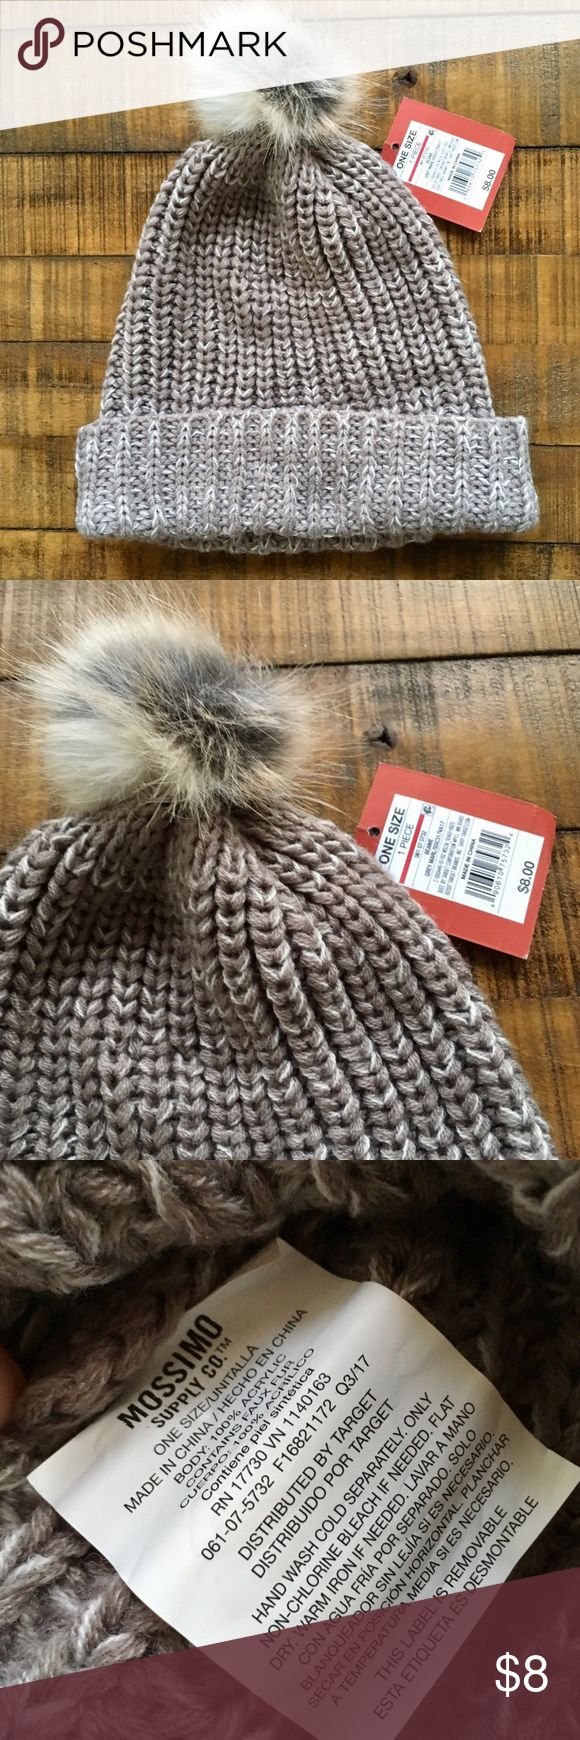 Cream beanie Cute pom pom beanie from Mossimo. Never used and with tag. No flaws. Mossimo Supply Co Other